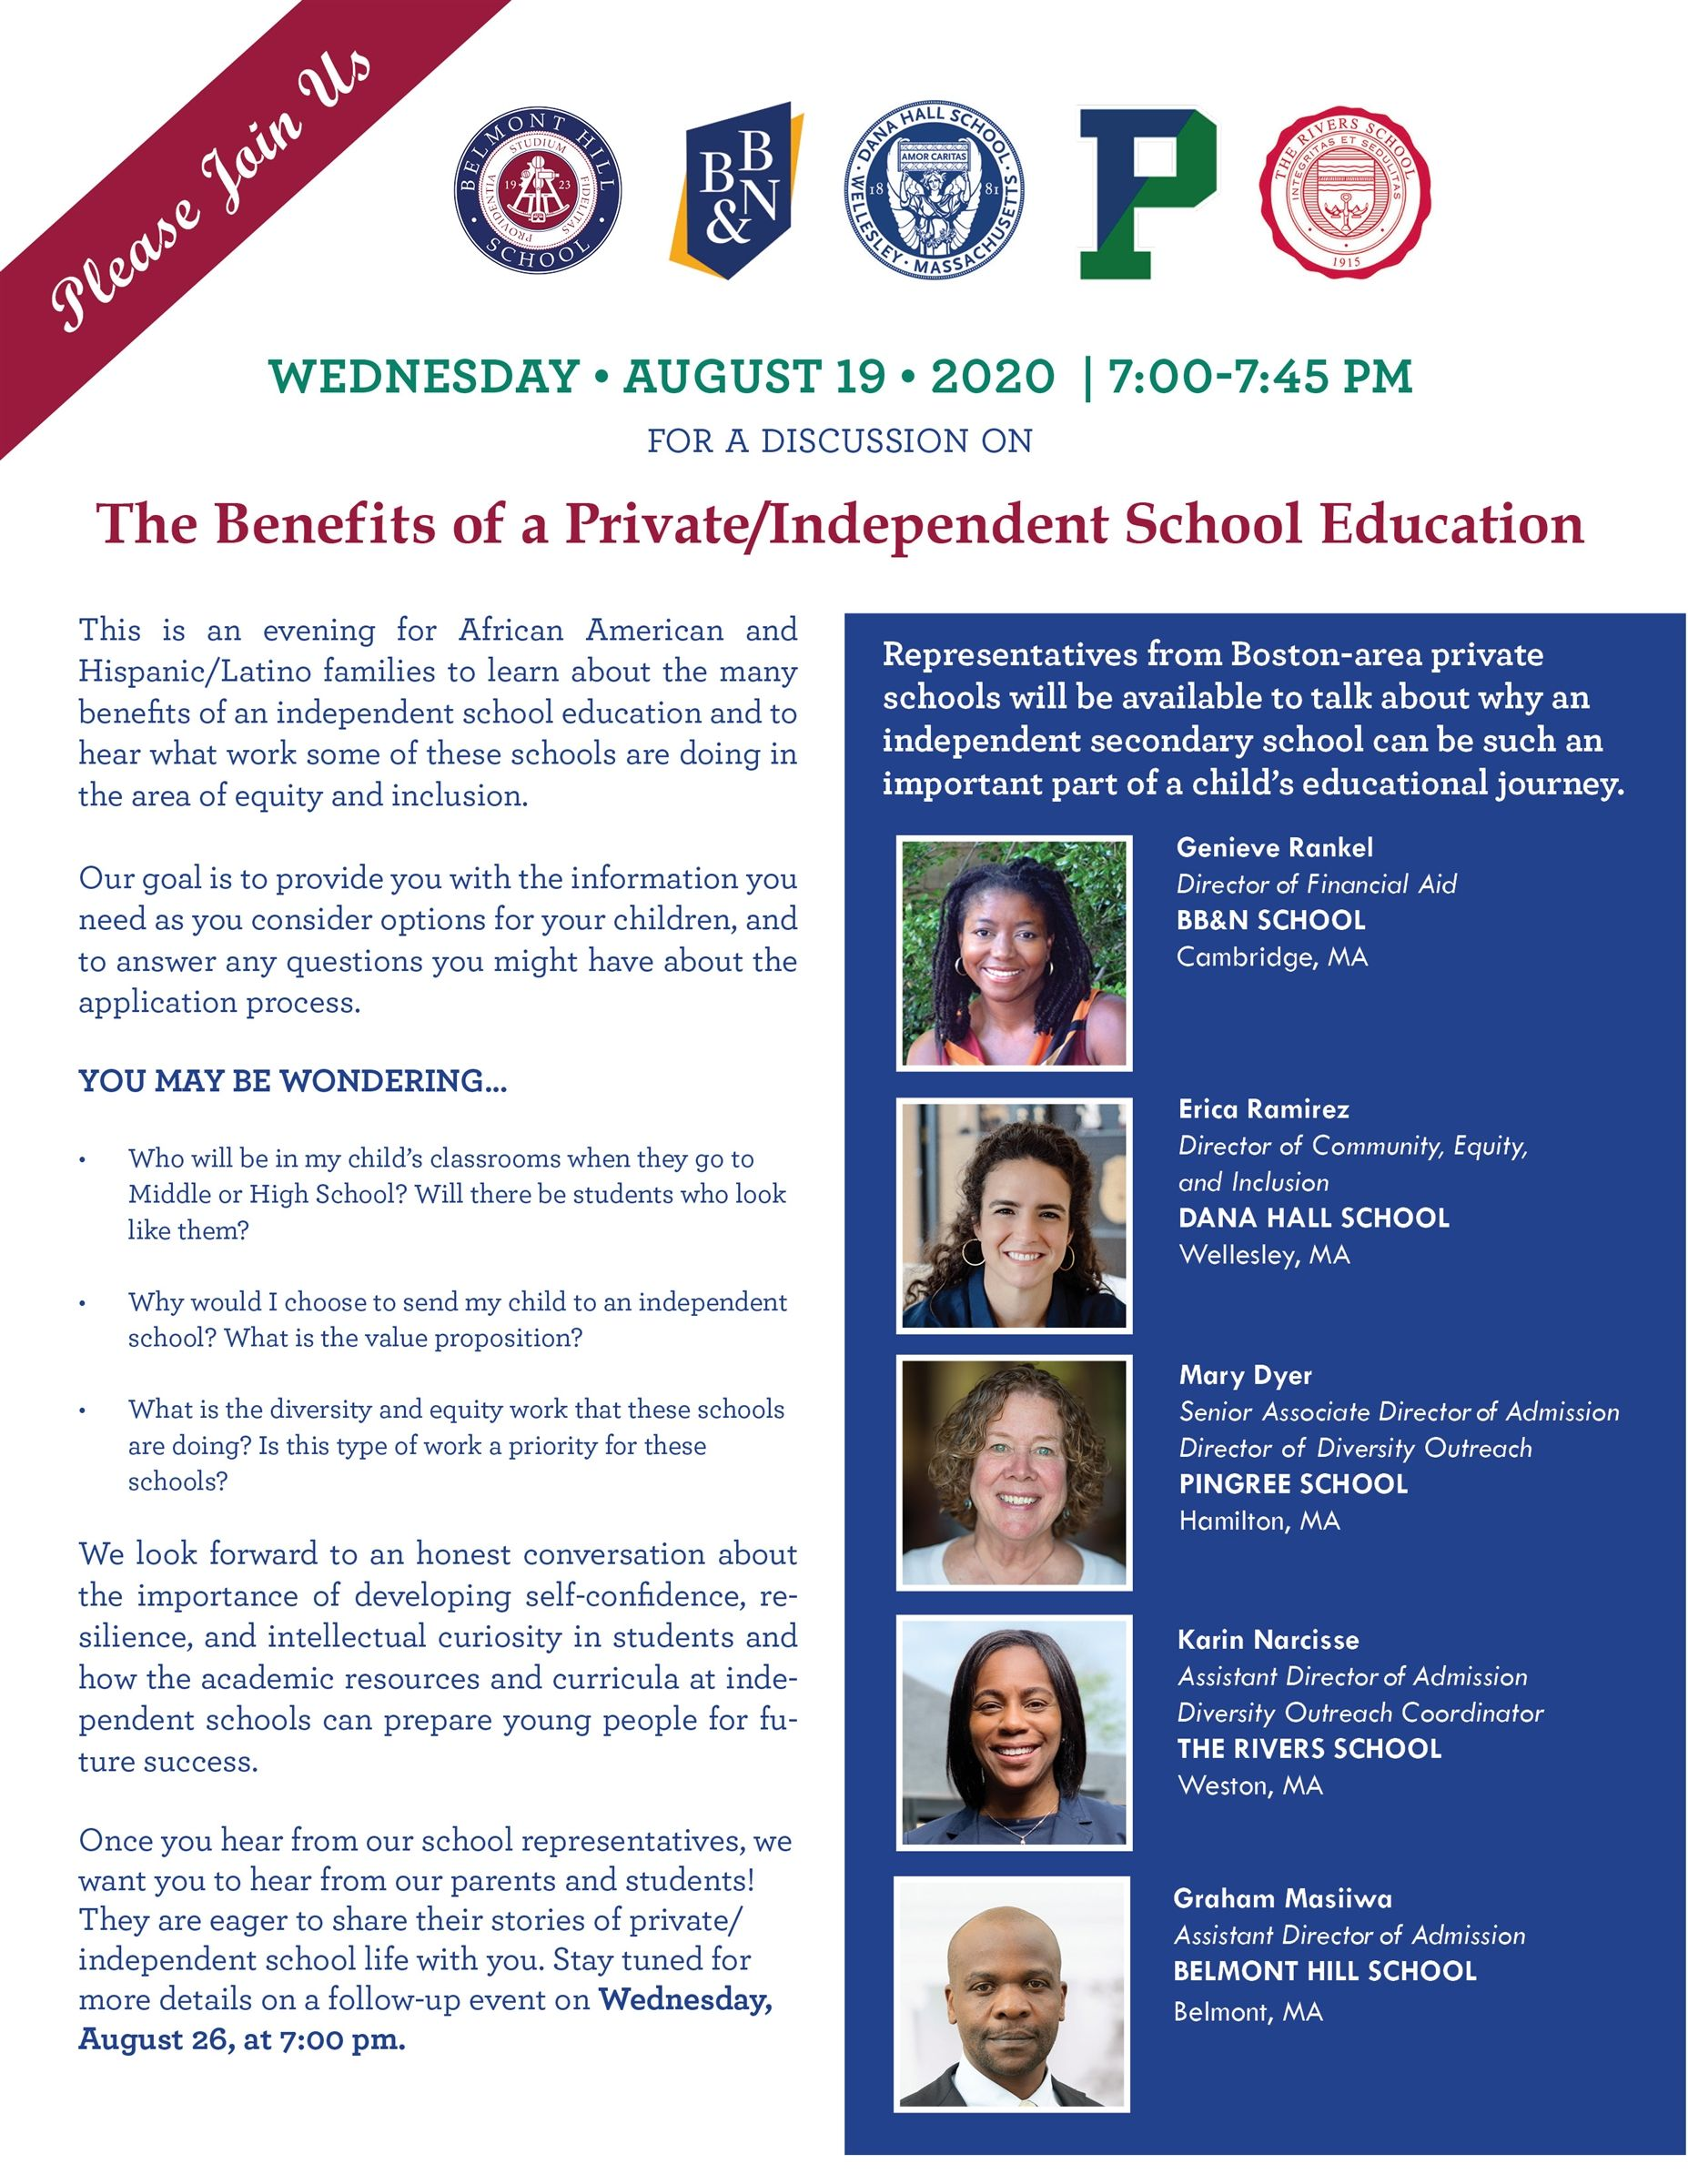 The Upper School Diversity Consortium is hosting a webinar to learn more about the private/independent school experience.